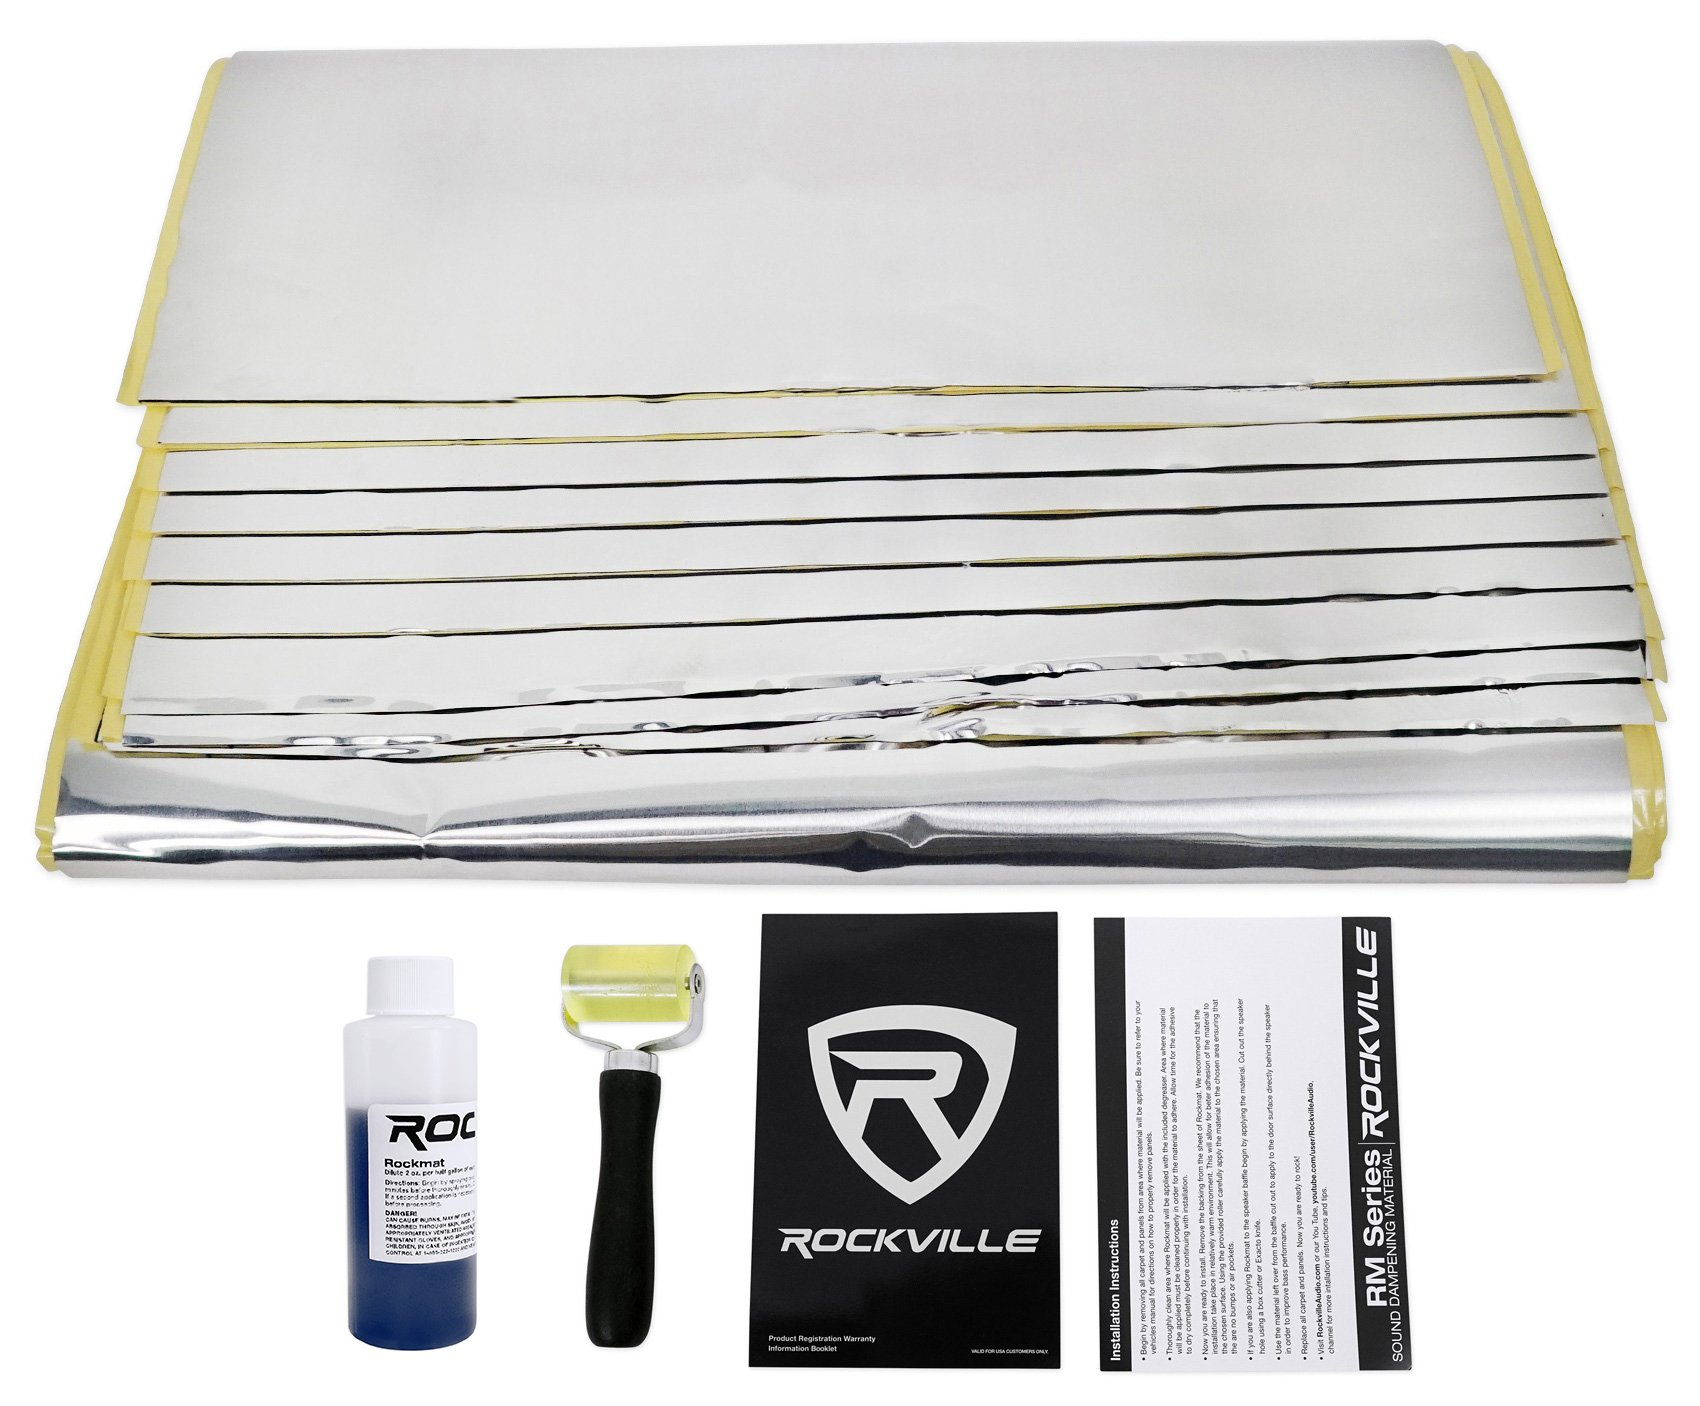 Rockville Rockmat RM36 36 Sq Ft Butyl Rubber Sound Dampening/Deadening Car Kit